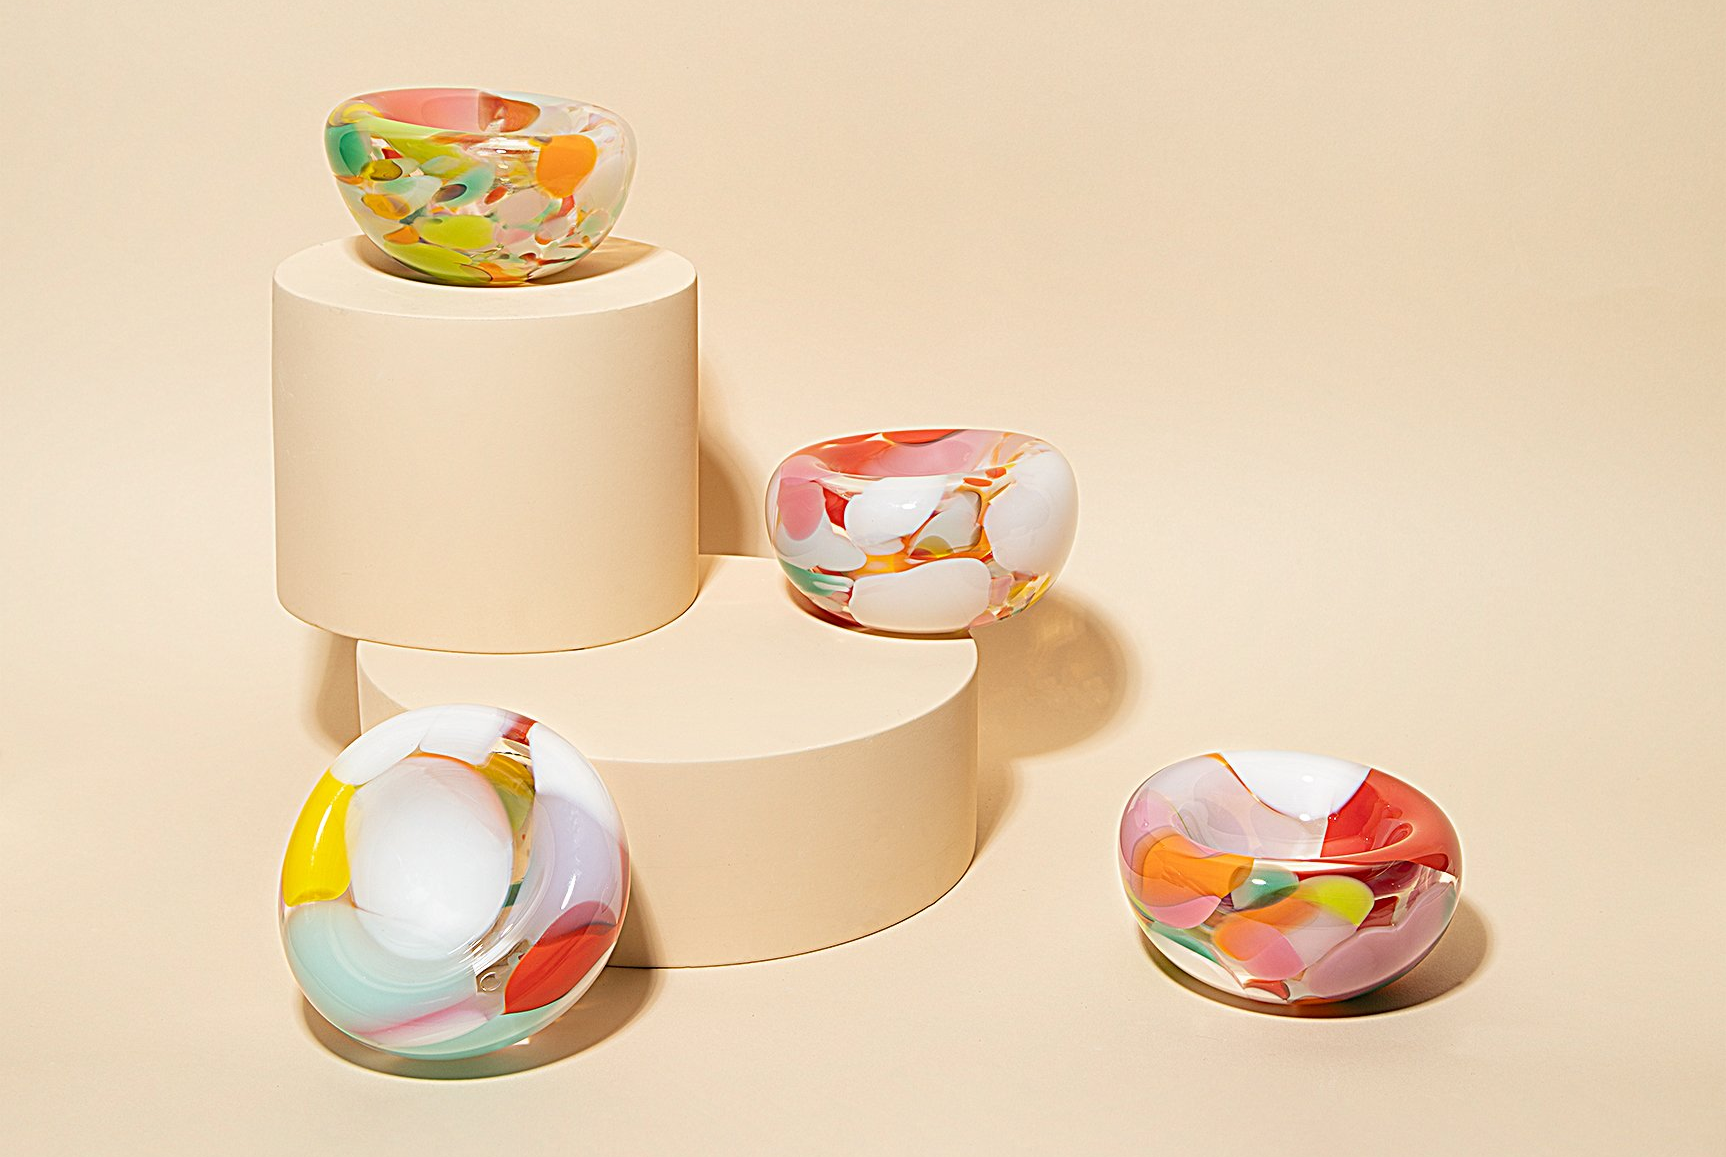 four glass ashtrays with different color splotches on them